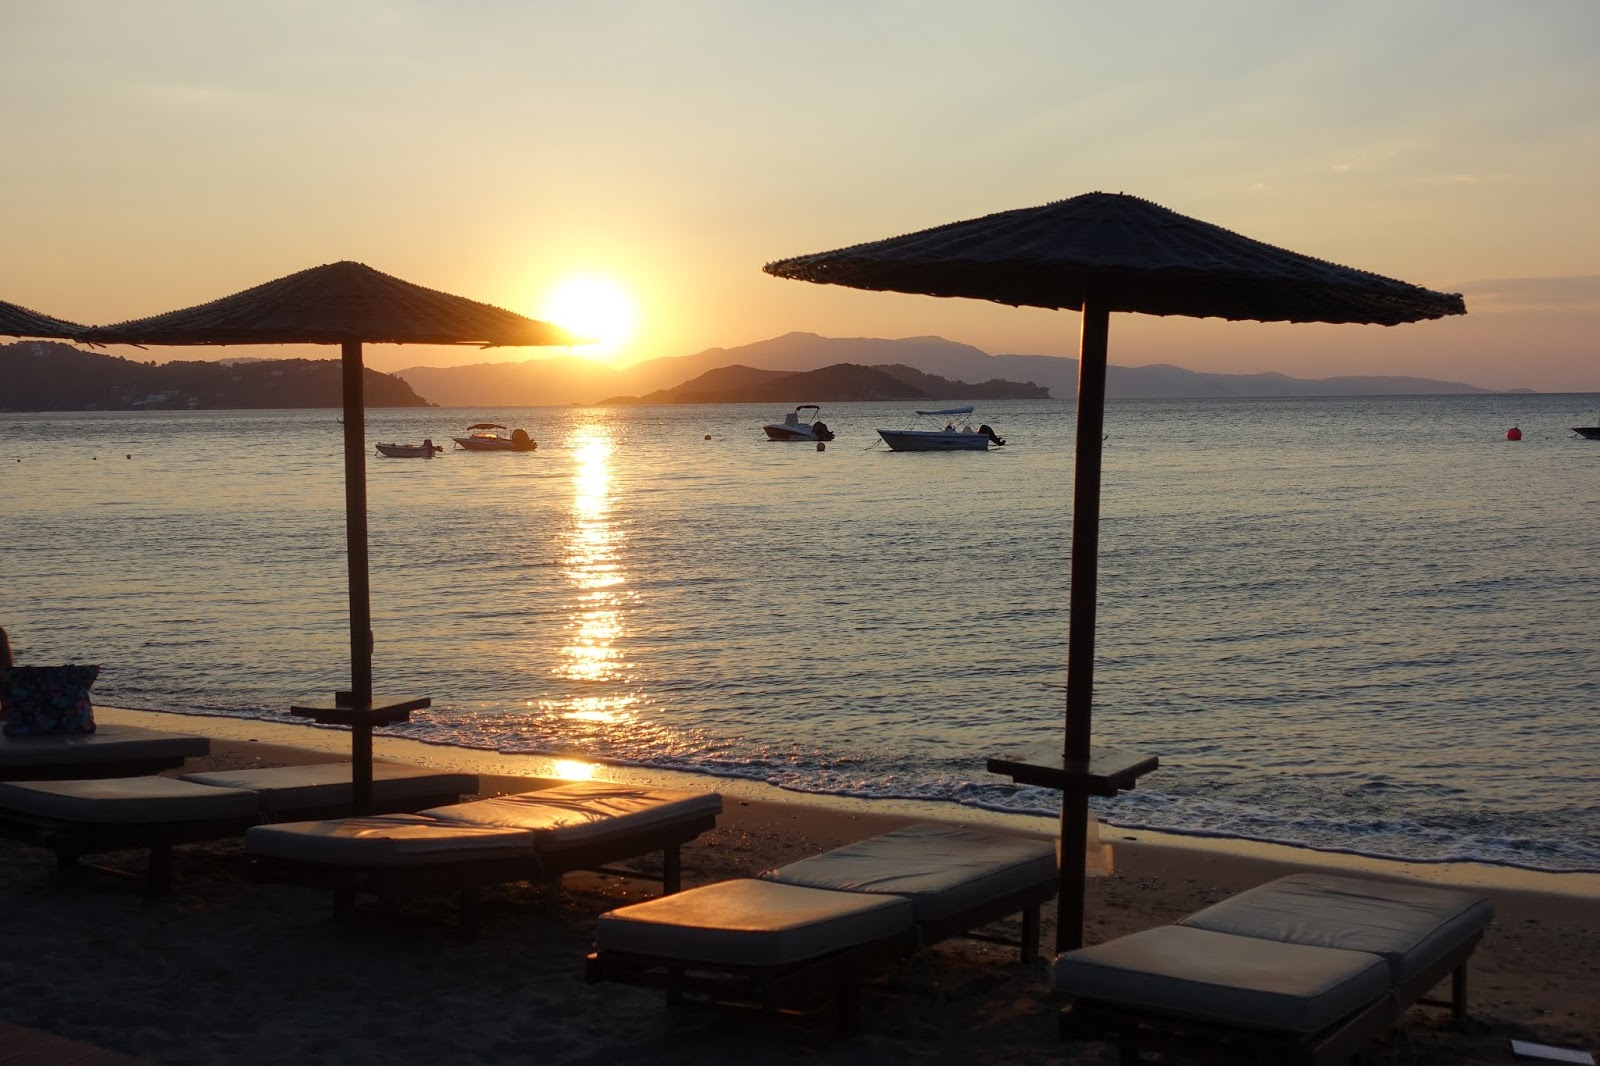 The sun comes up over the sunbeds at Vassilias beach, Skiathos in Greece